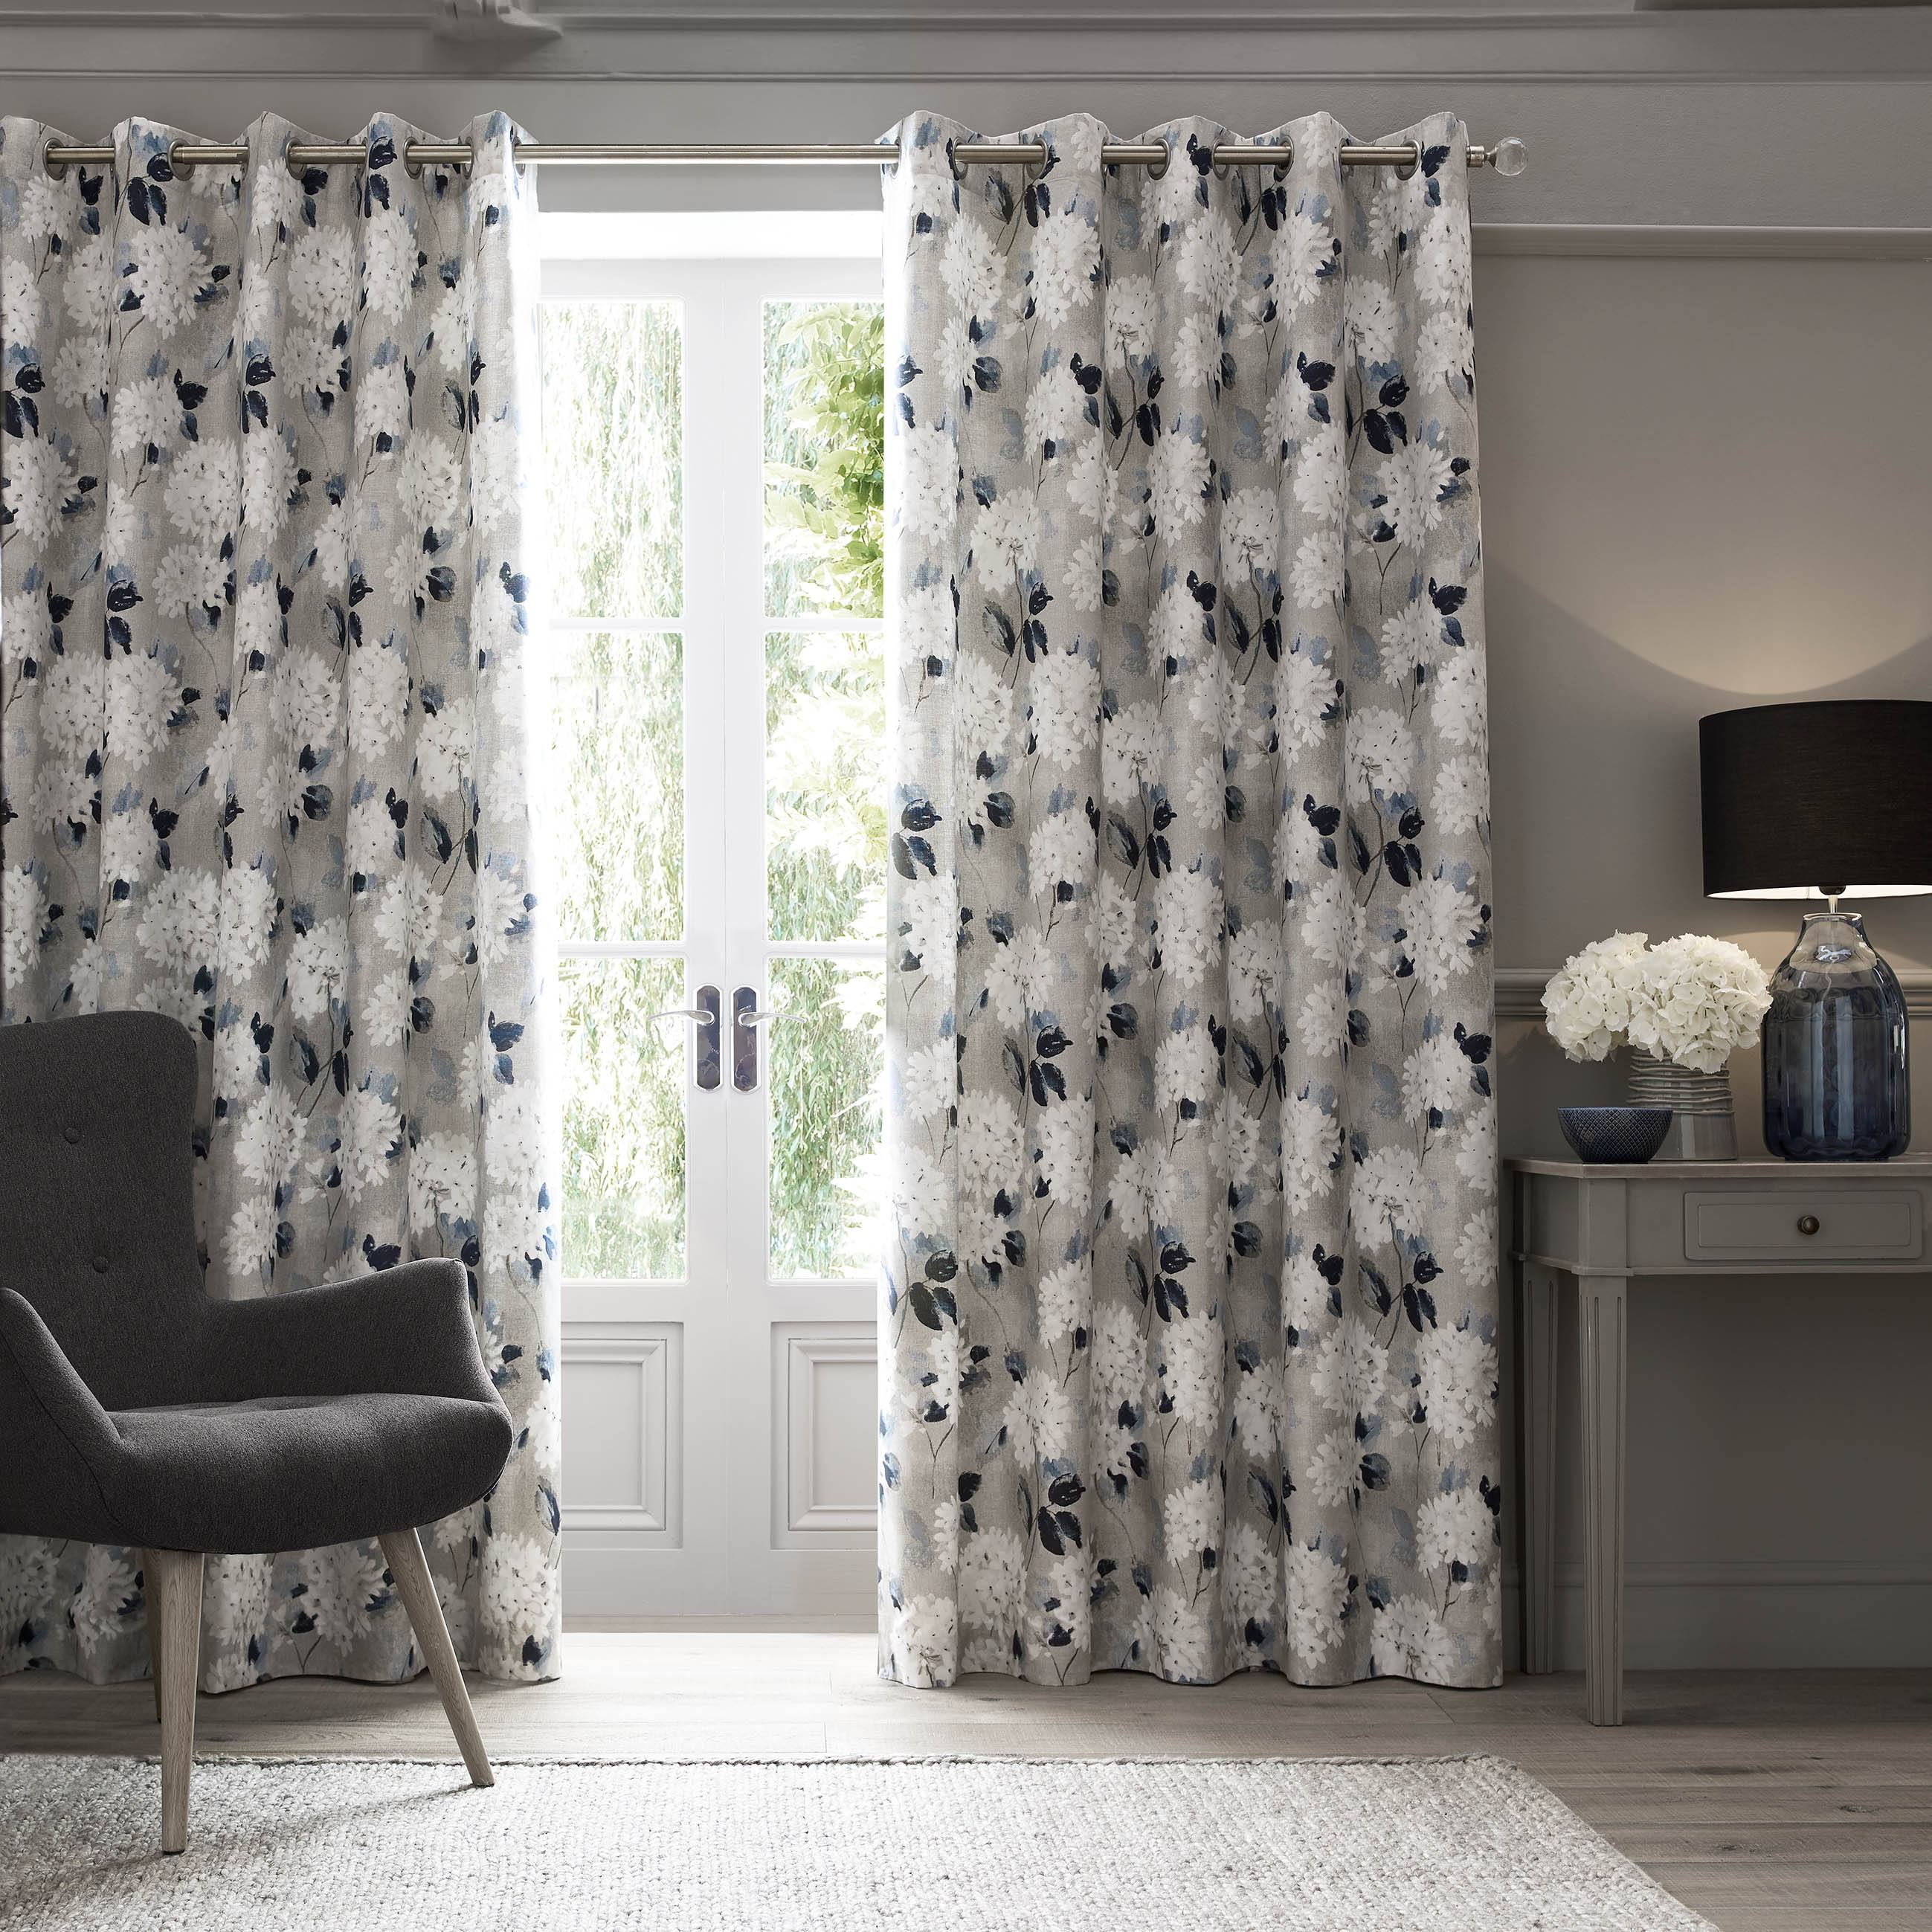 Beginners Guide To Buying Ready Made Curtains / Home Focus Blog Throughout All Seasons Blackout Window Curtains (View 20 of 20)